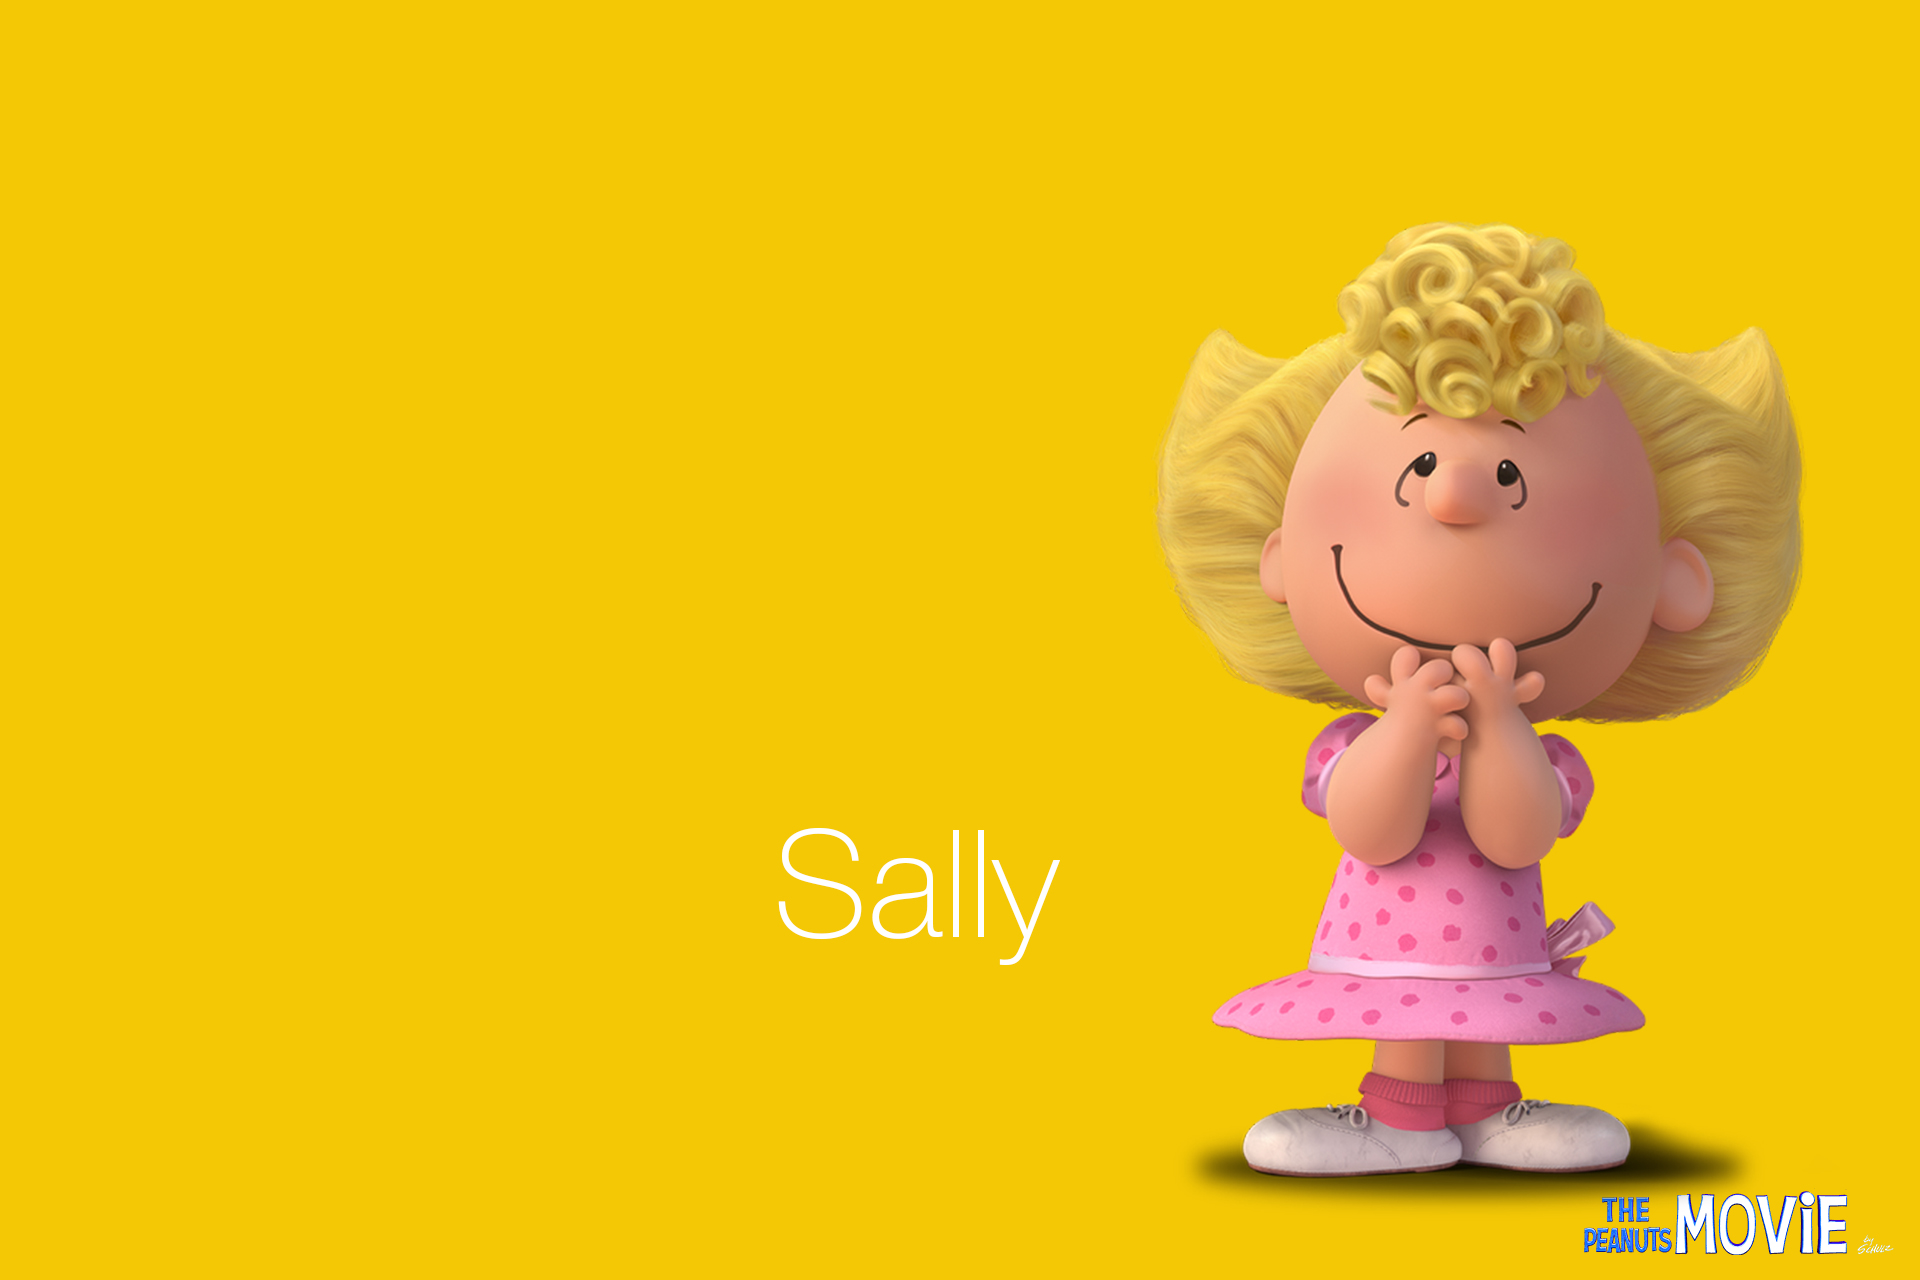 Hd wallpaper of bahubali 2 - Sally Wallpaper From The Peanuts Movie Volganga